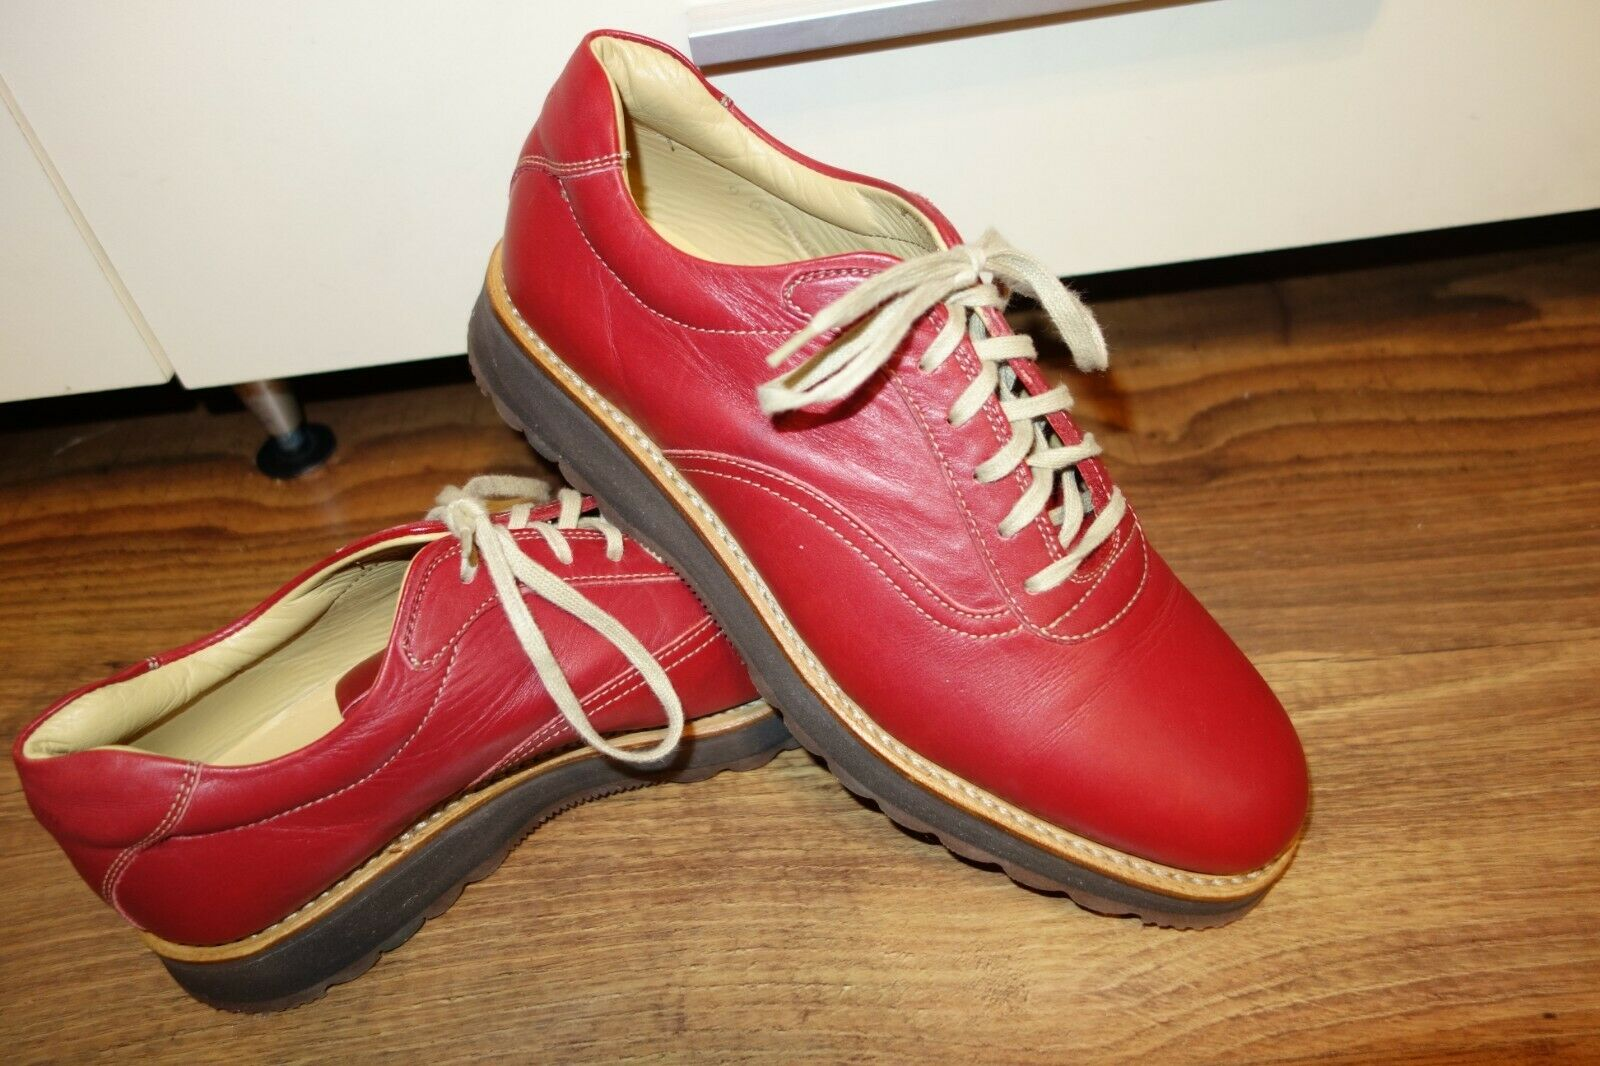 GREAT GENUINE HESCHUNG  LEATHER, SIZE UK 6.5, EU 40, RED, MINT CONDITION